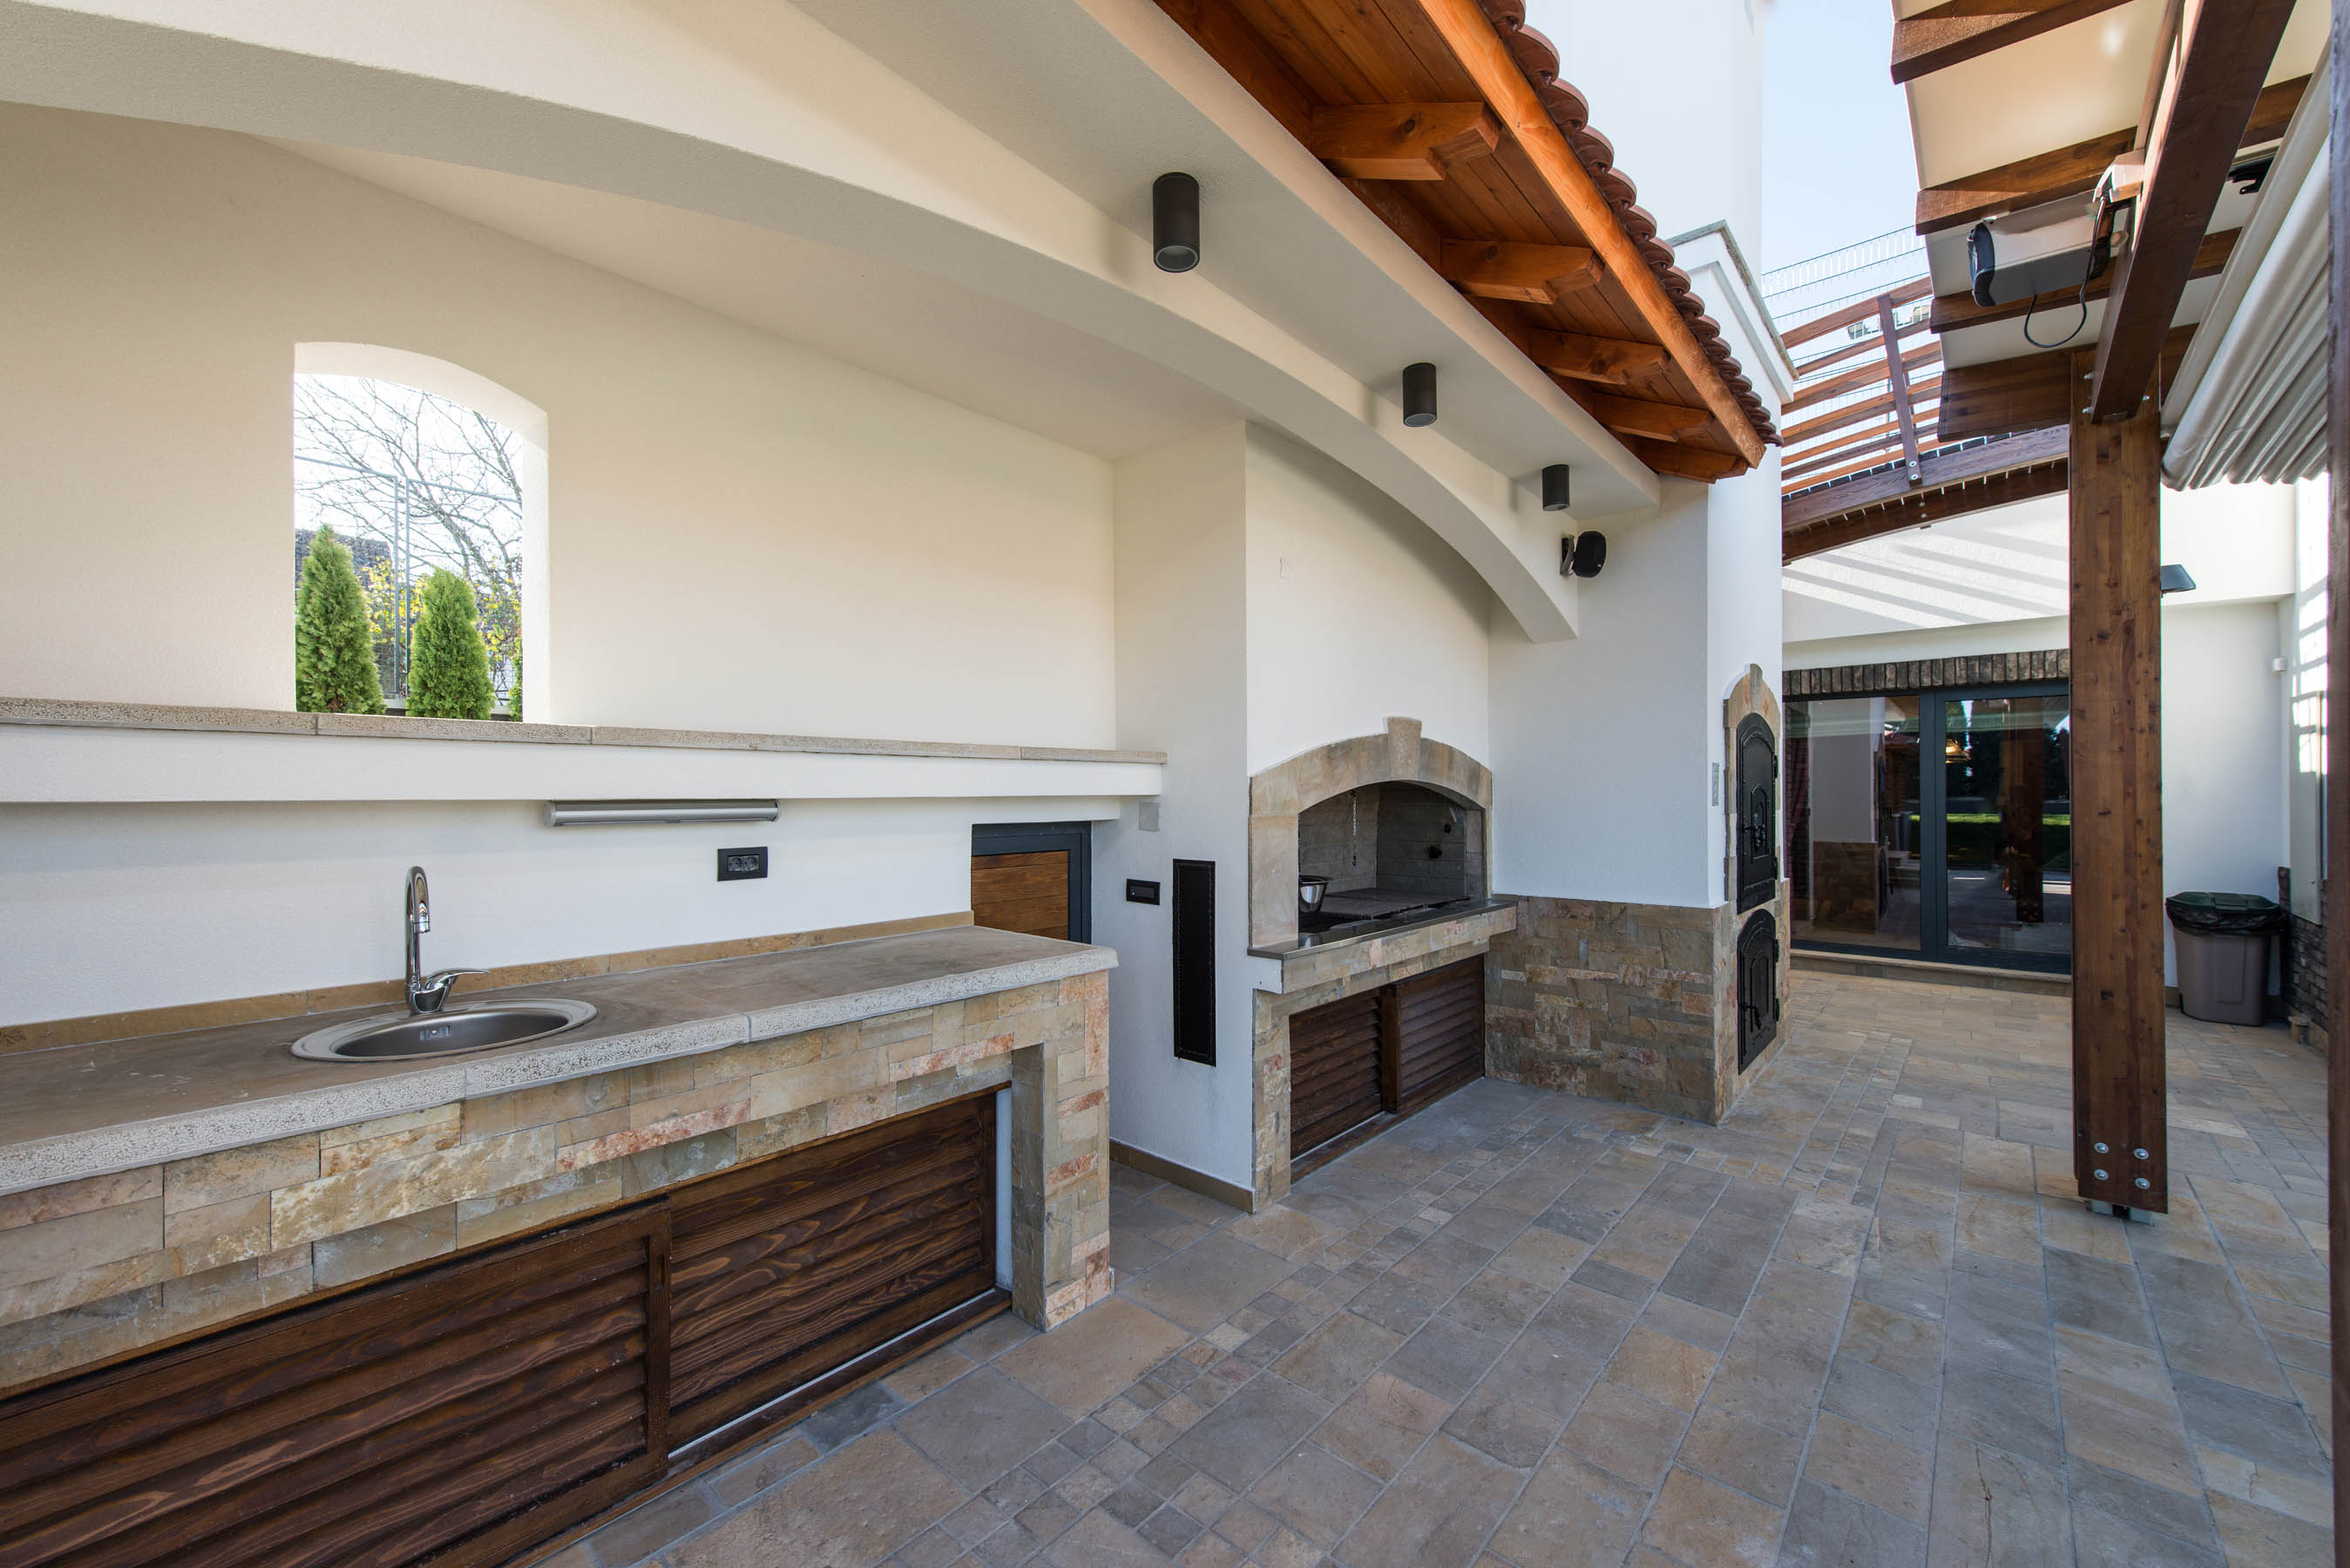 Outdoor Kitchens & Patios Remodeling – SOLIDWORKS REMODELING